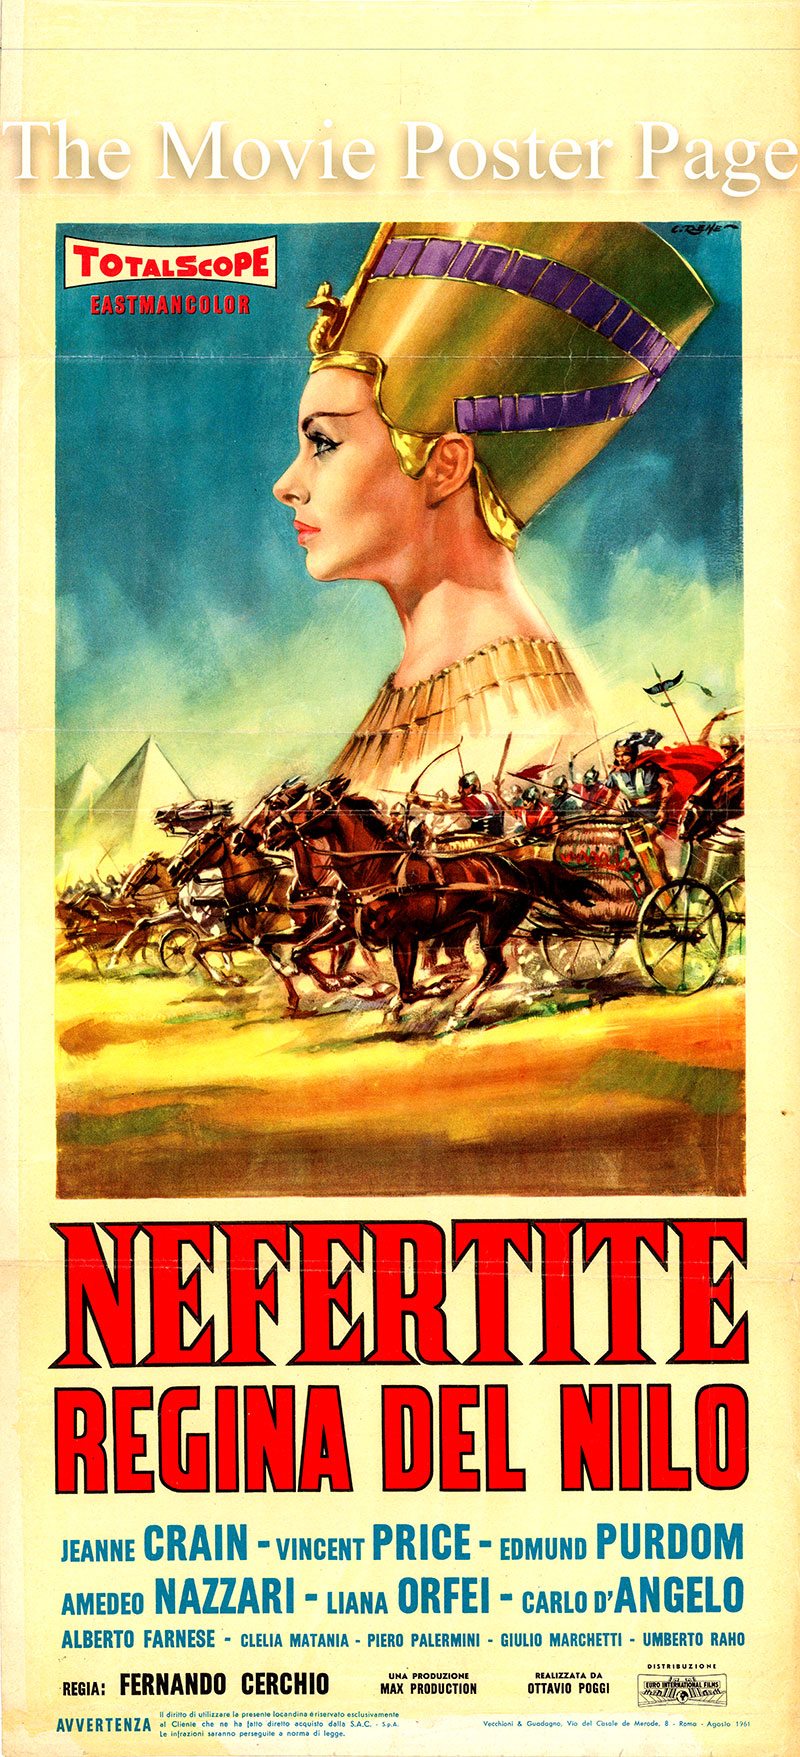 Pictured is an Italian locandina promotional poster for the 1961 Fernando Cerchio film Nefertitie Queen of the Nile starring Jeanne Crain and Vincent Price.